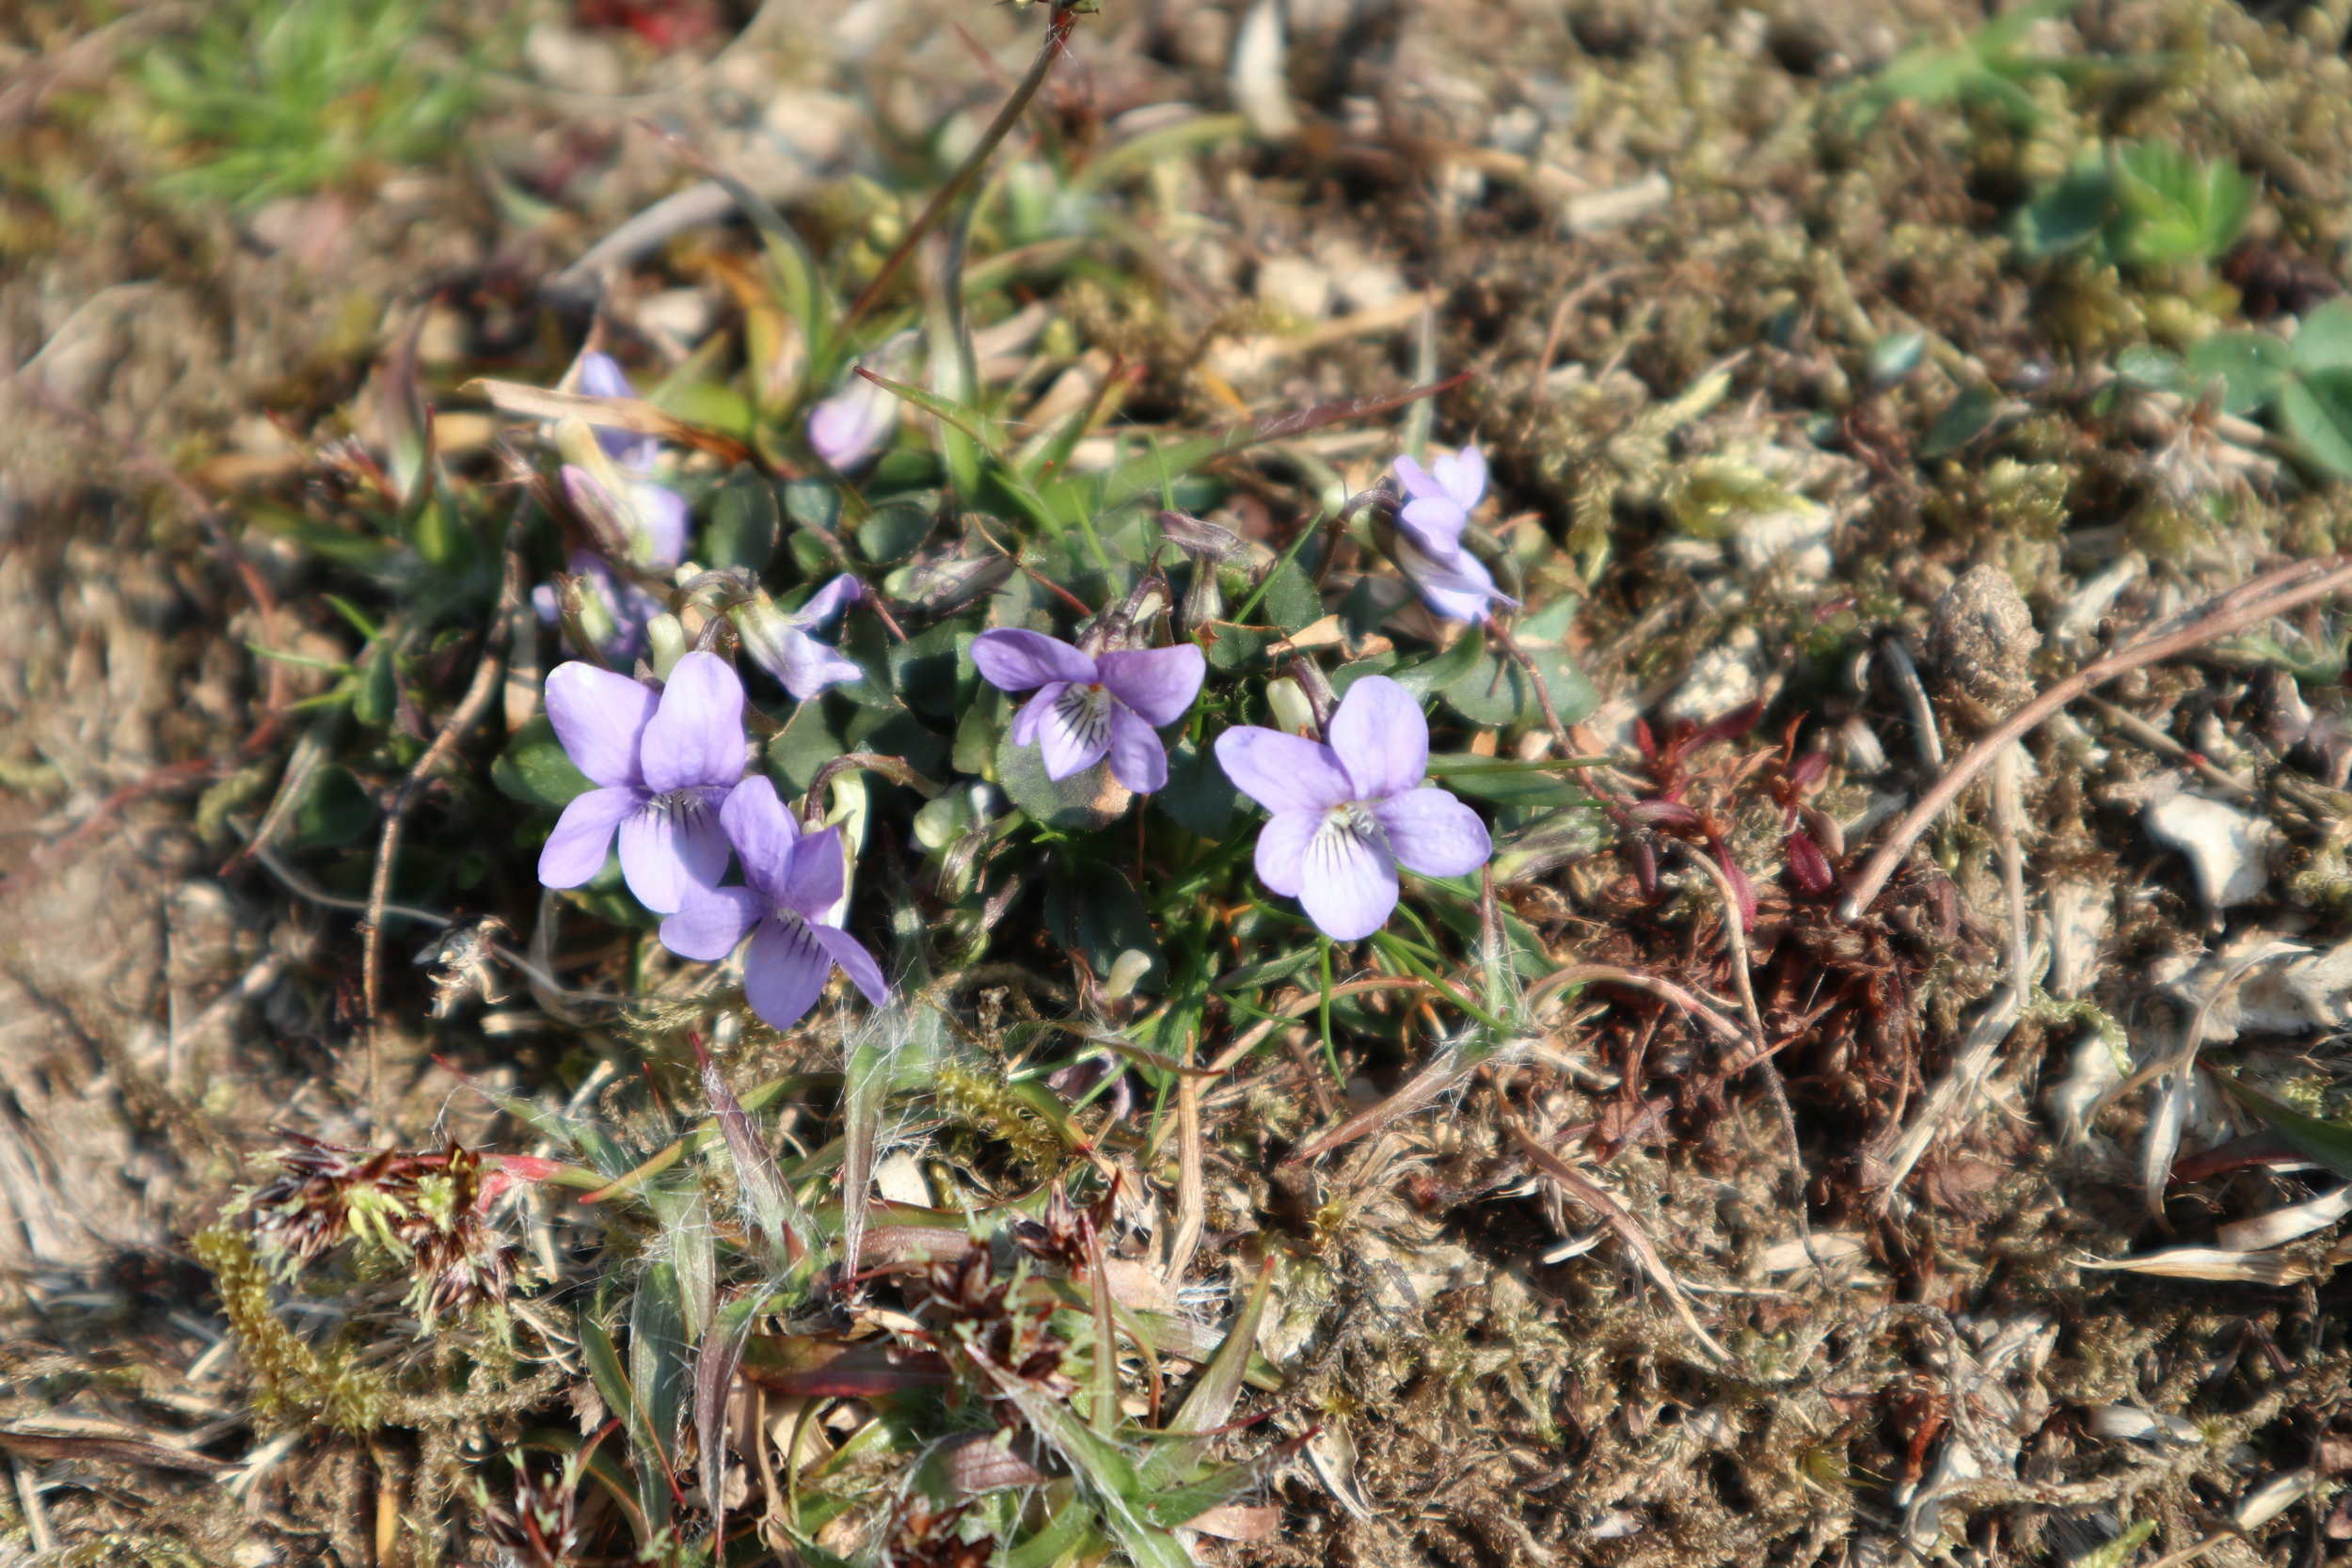 I spotted the tiny Common Dog-violet (Viola riviniana) in flower